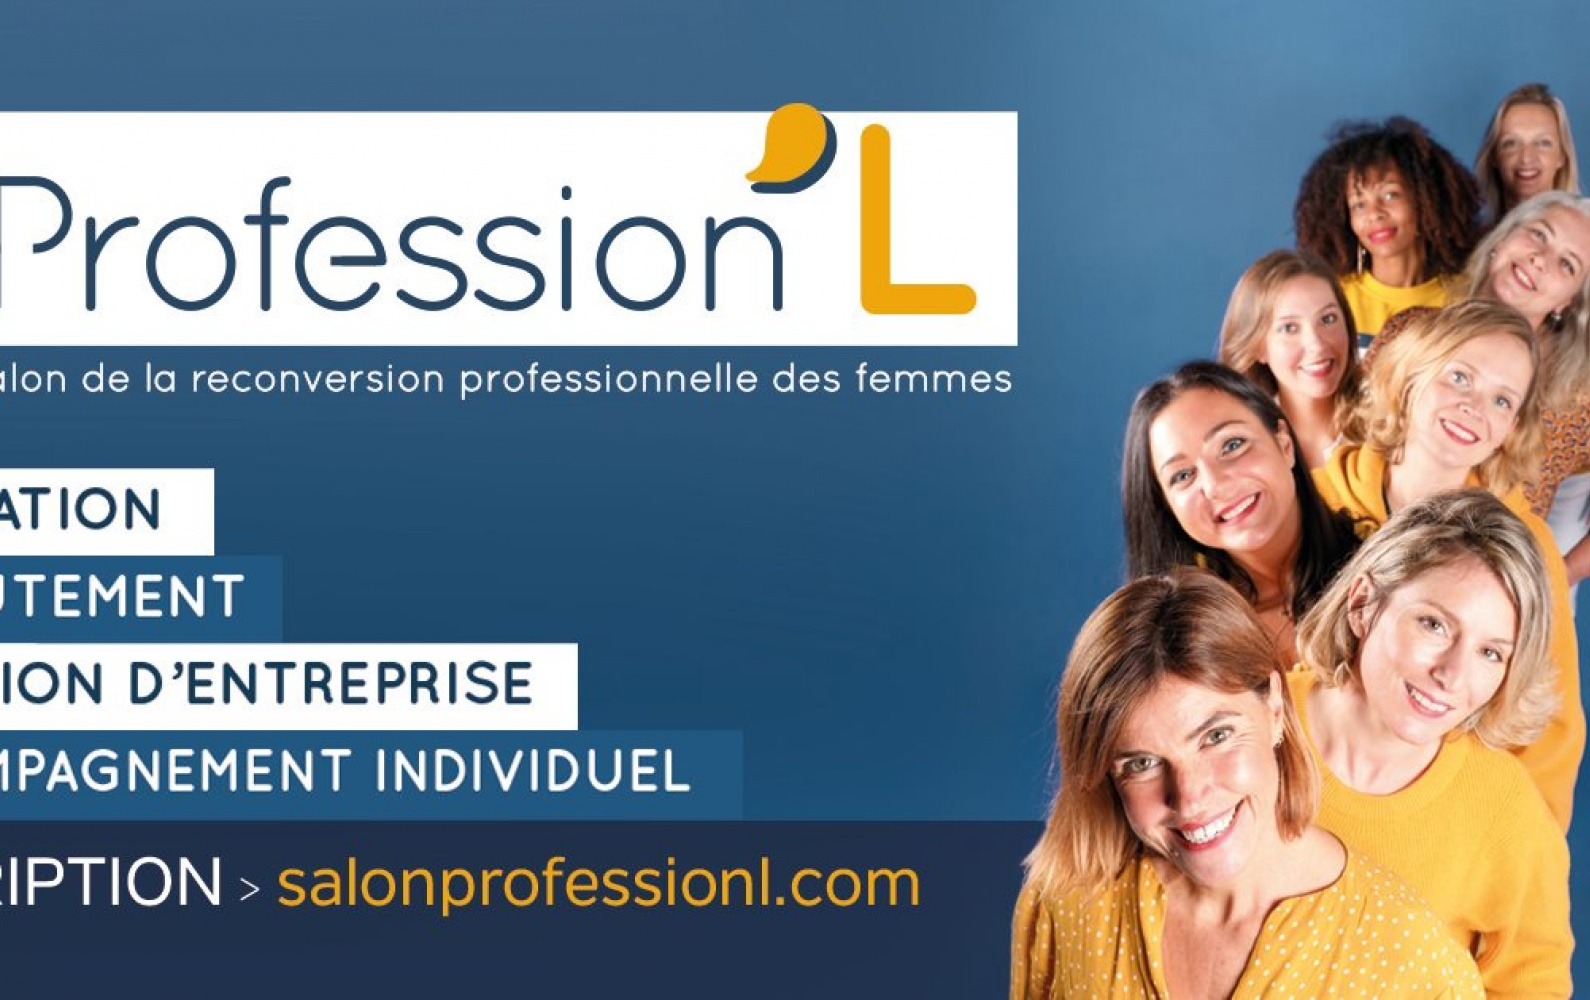 Salon Virtuel Profession'L - Devenir Secrétaire Indépendante